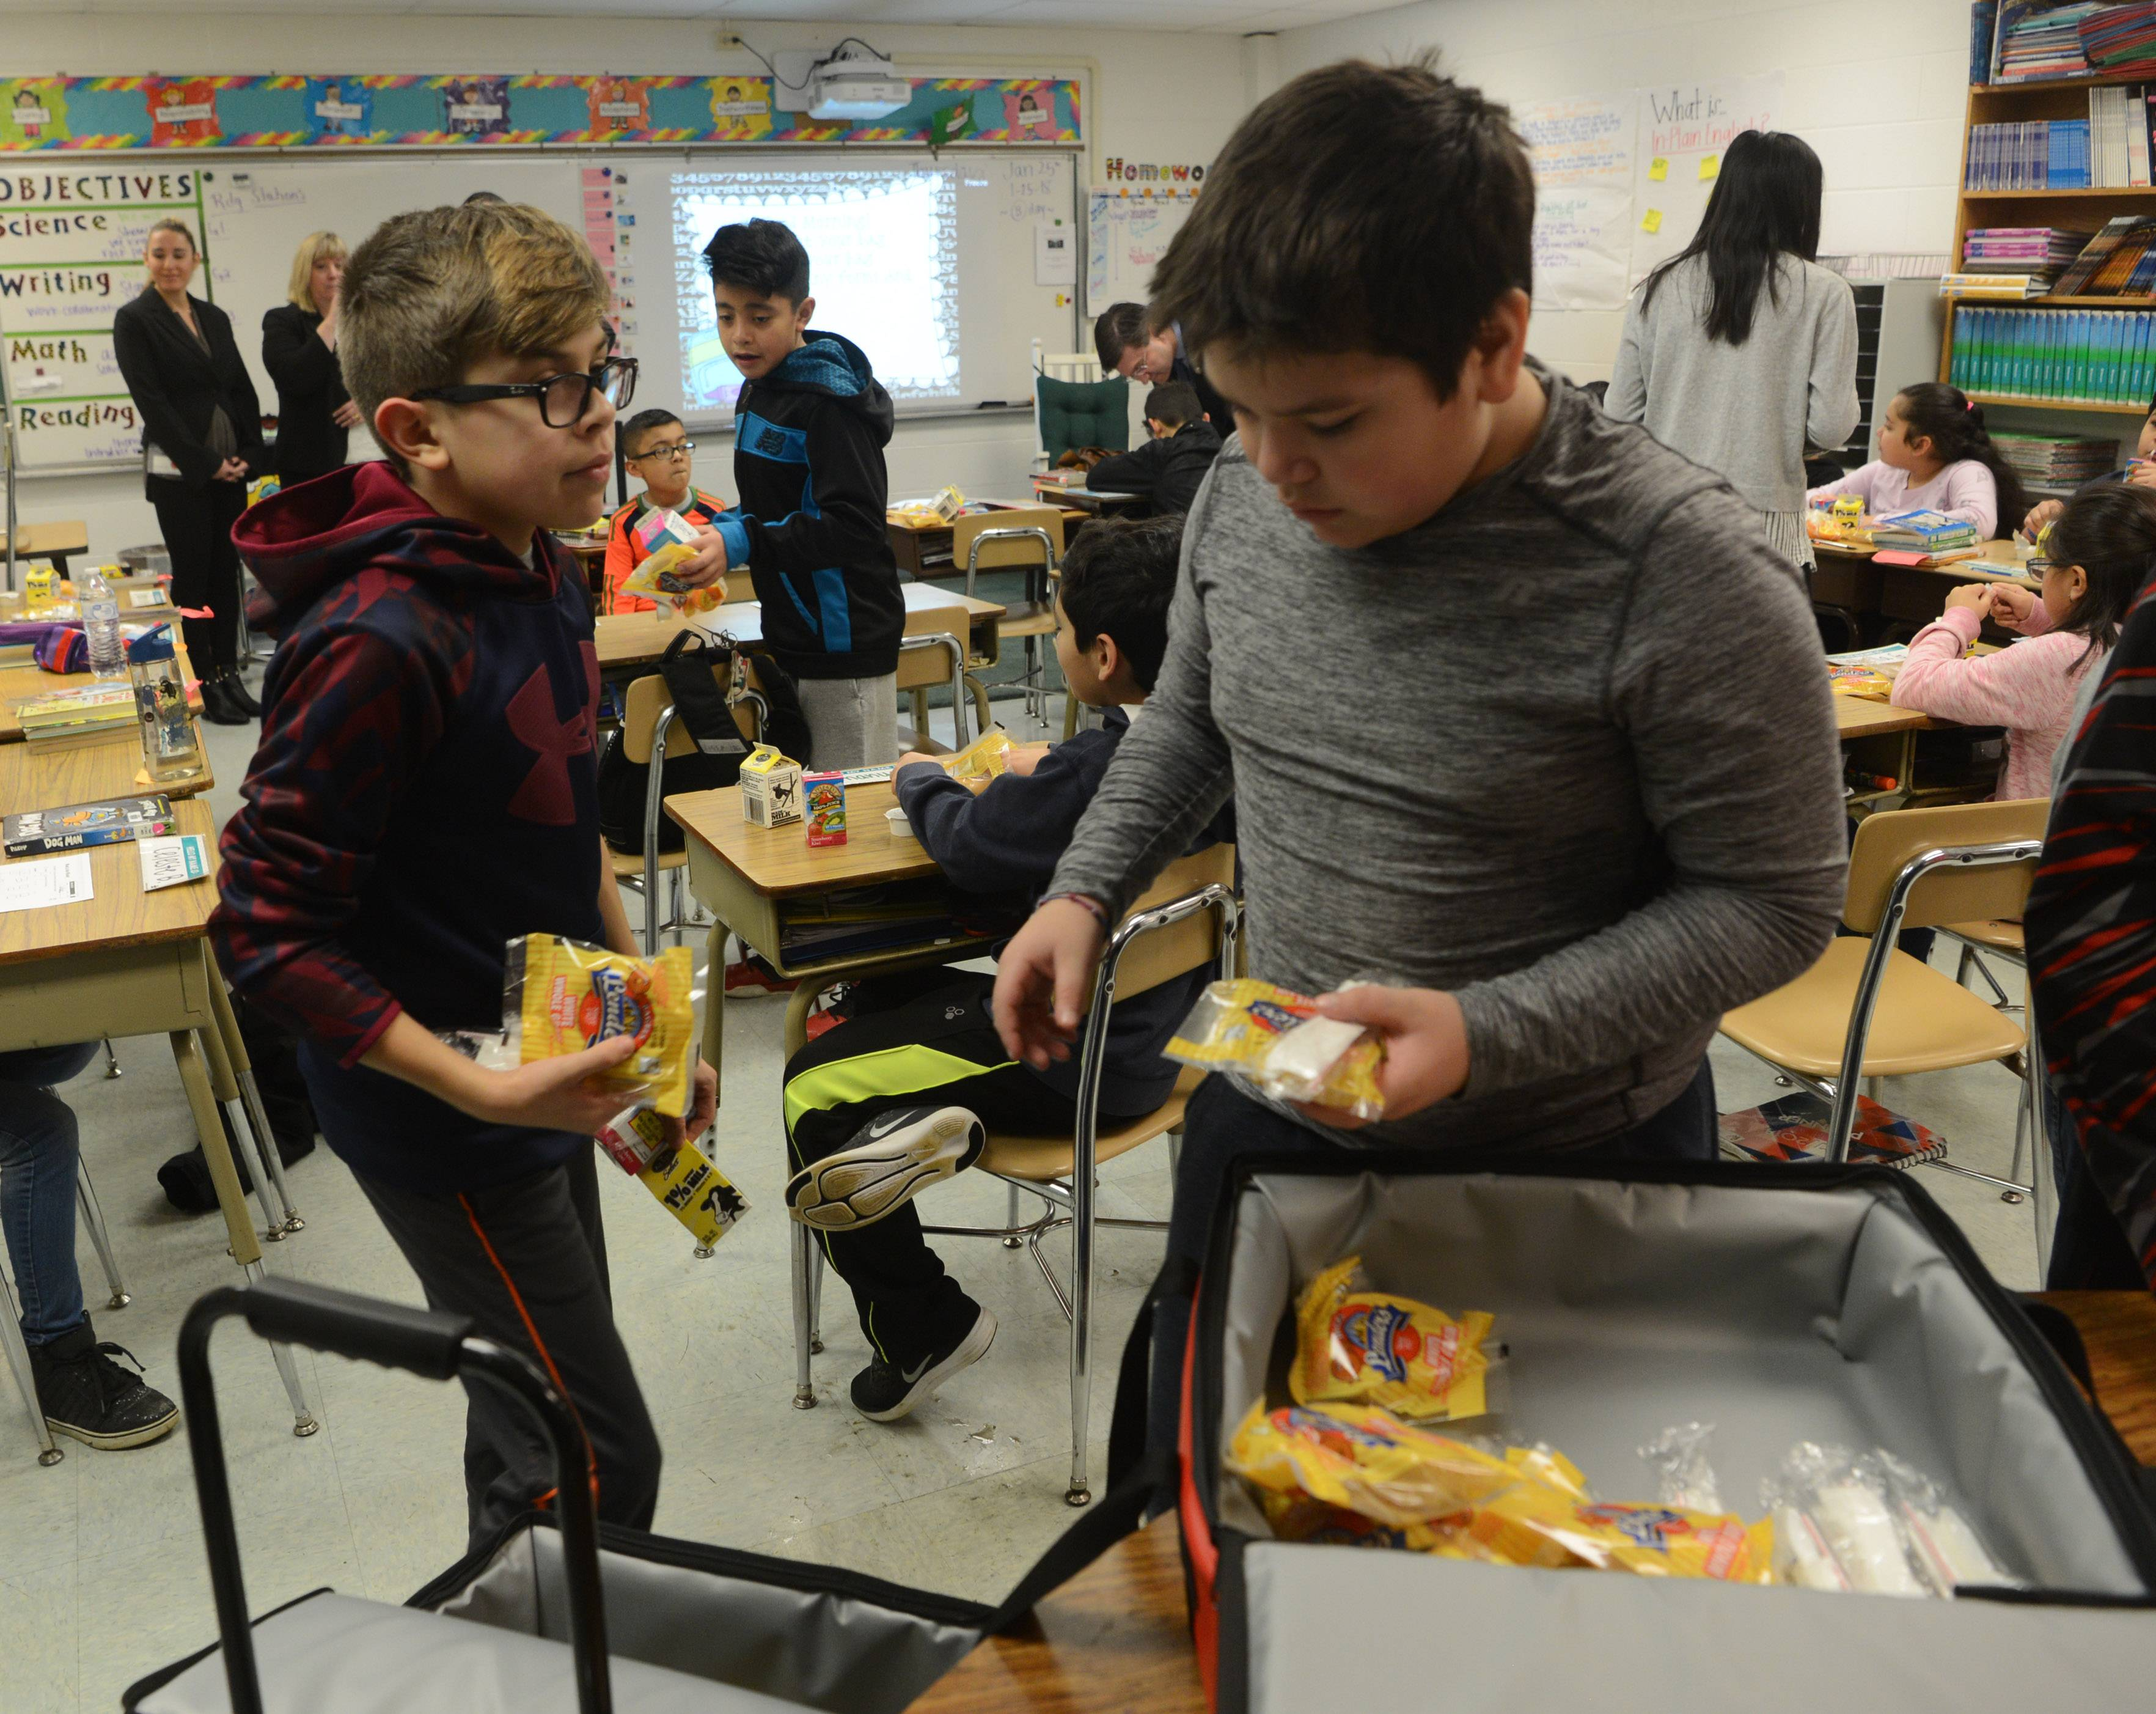 Fourth-graders John Scanlon, left, and Gabriel Reyna make their choices Thursday as part of the successful Breakfast After the Bell program at Mark Twain Elementary School in Wheeling.